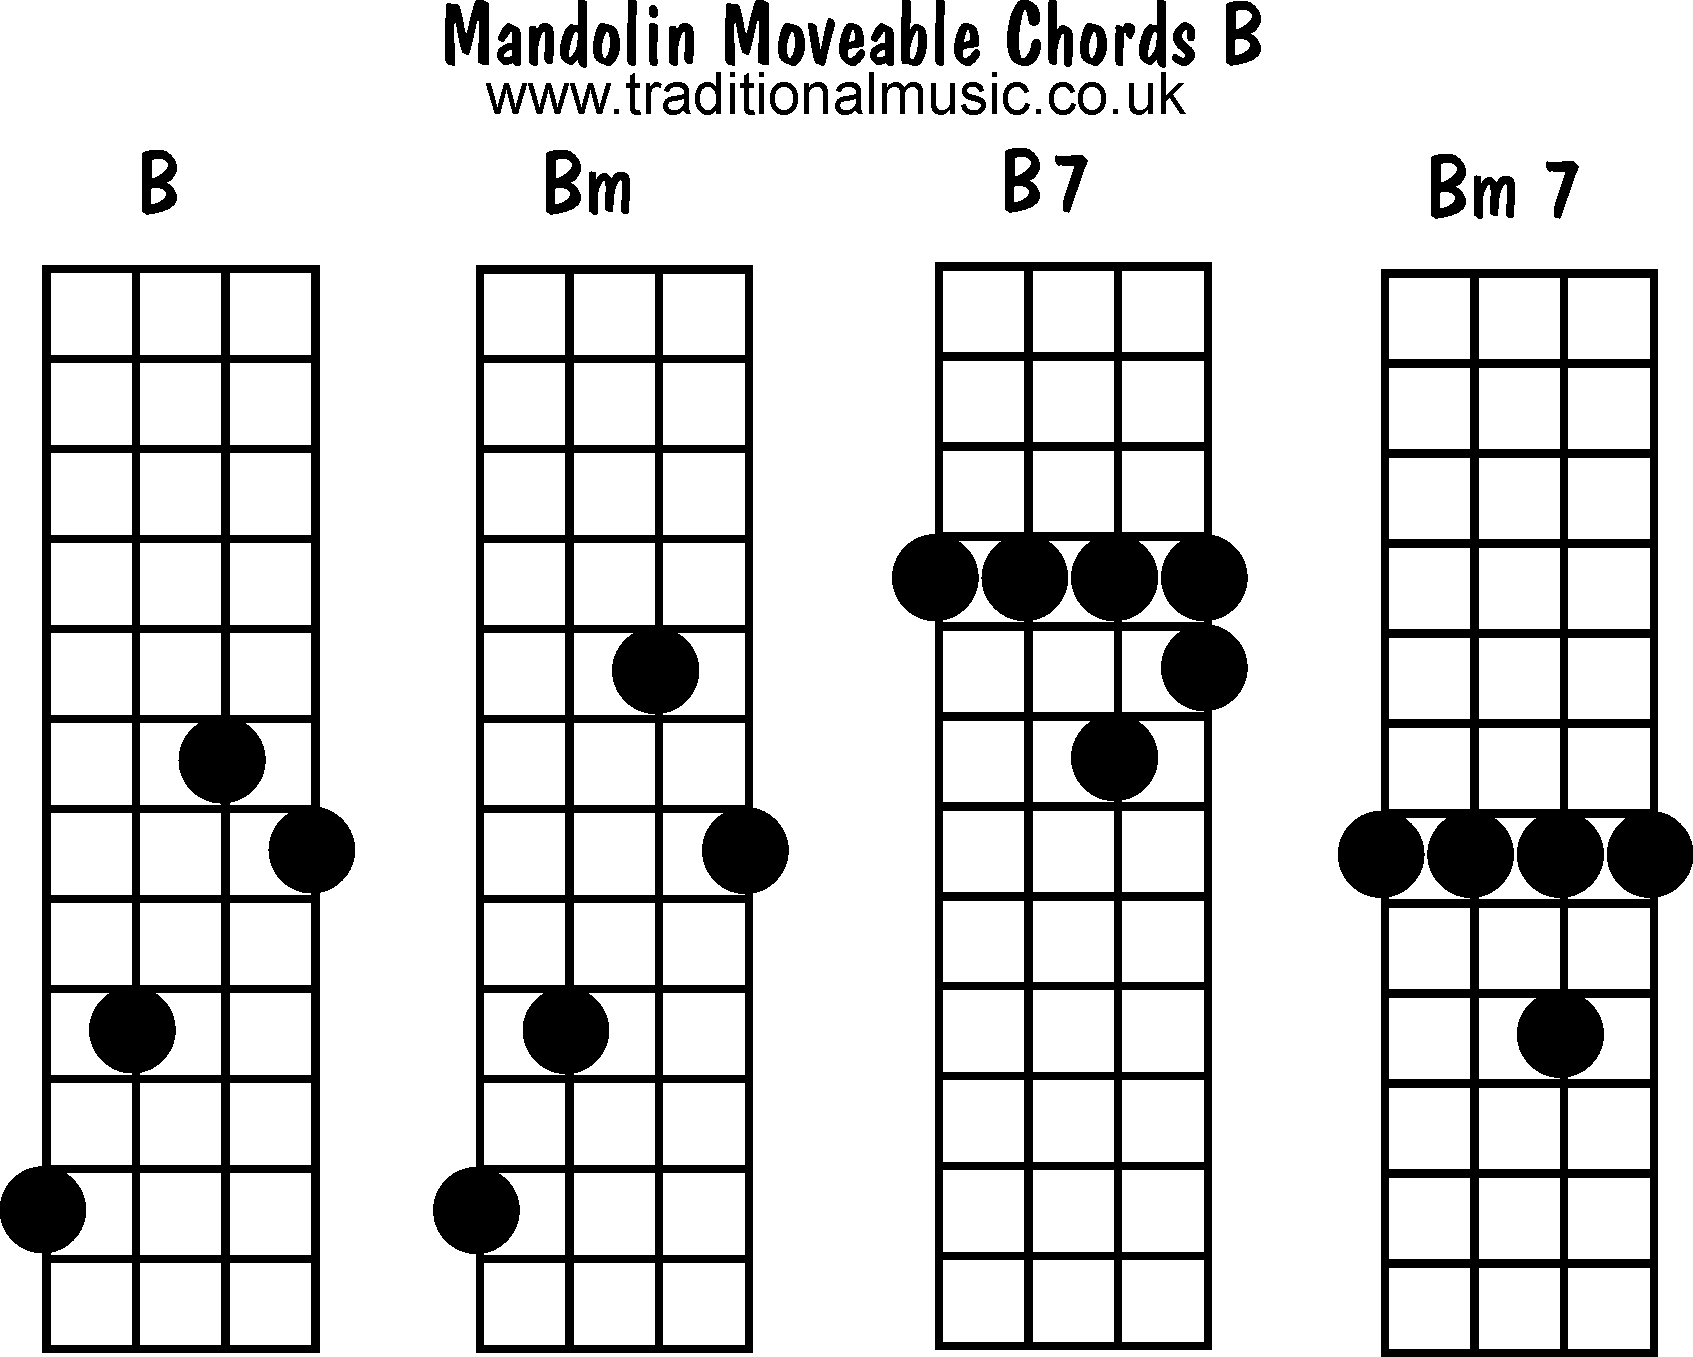 Mandolin chords moveable B Bm B7 Bm7 – Mandolin Chord Chart